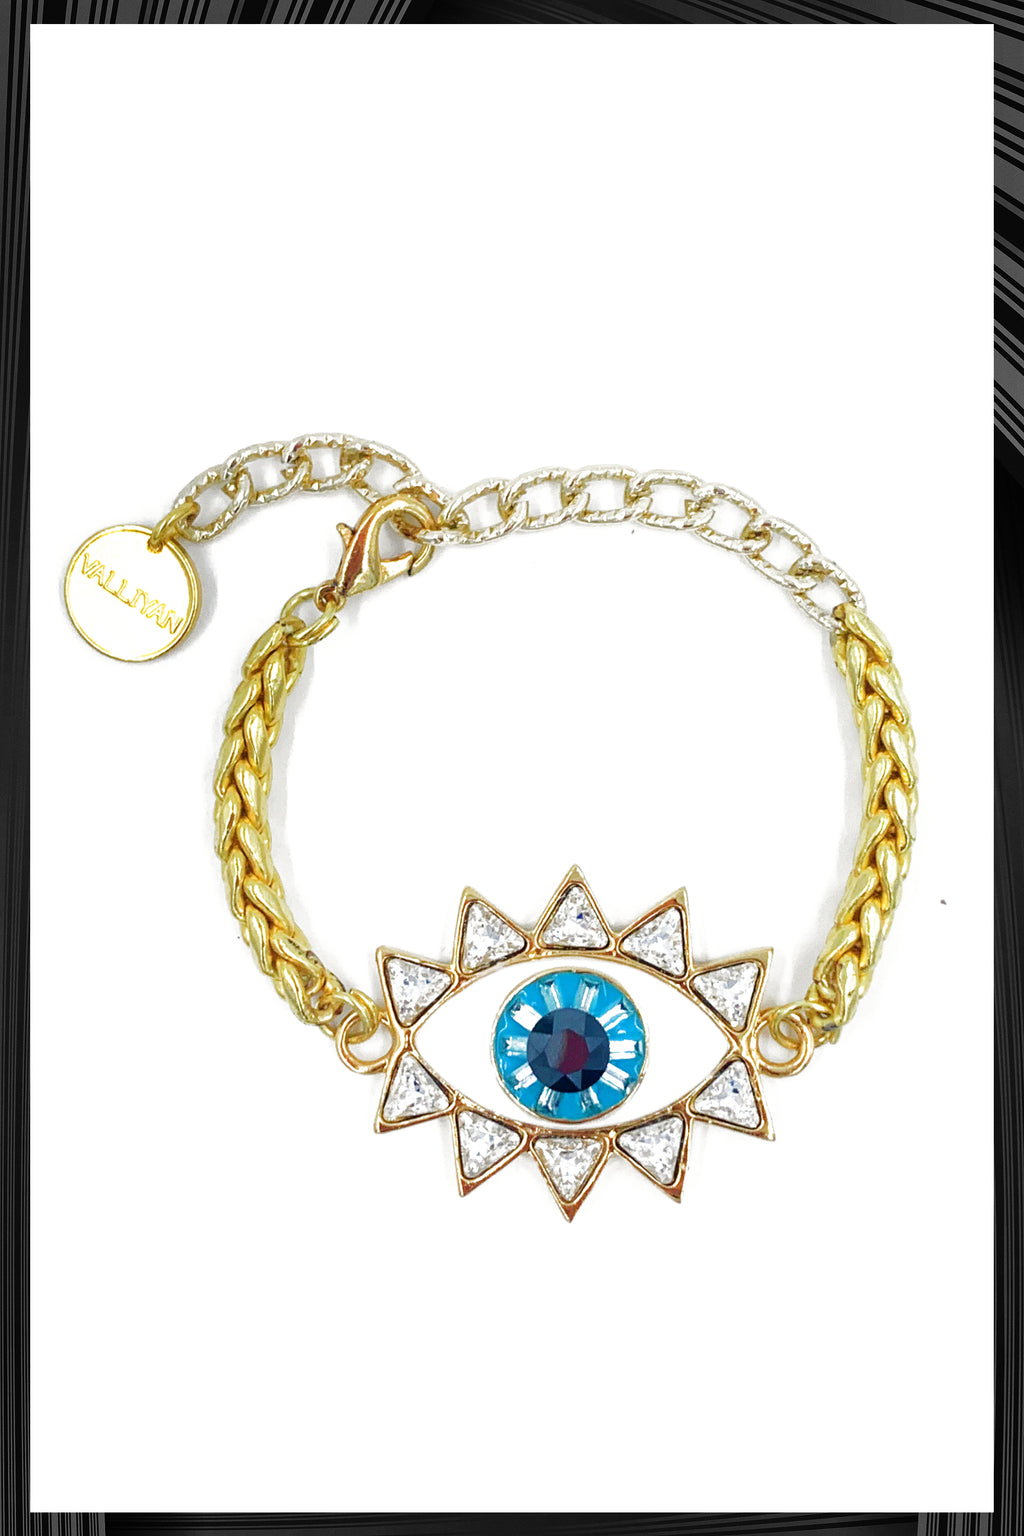 Golden Evil Eye Bracelet | Free Delivery - Quick Shipping